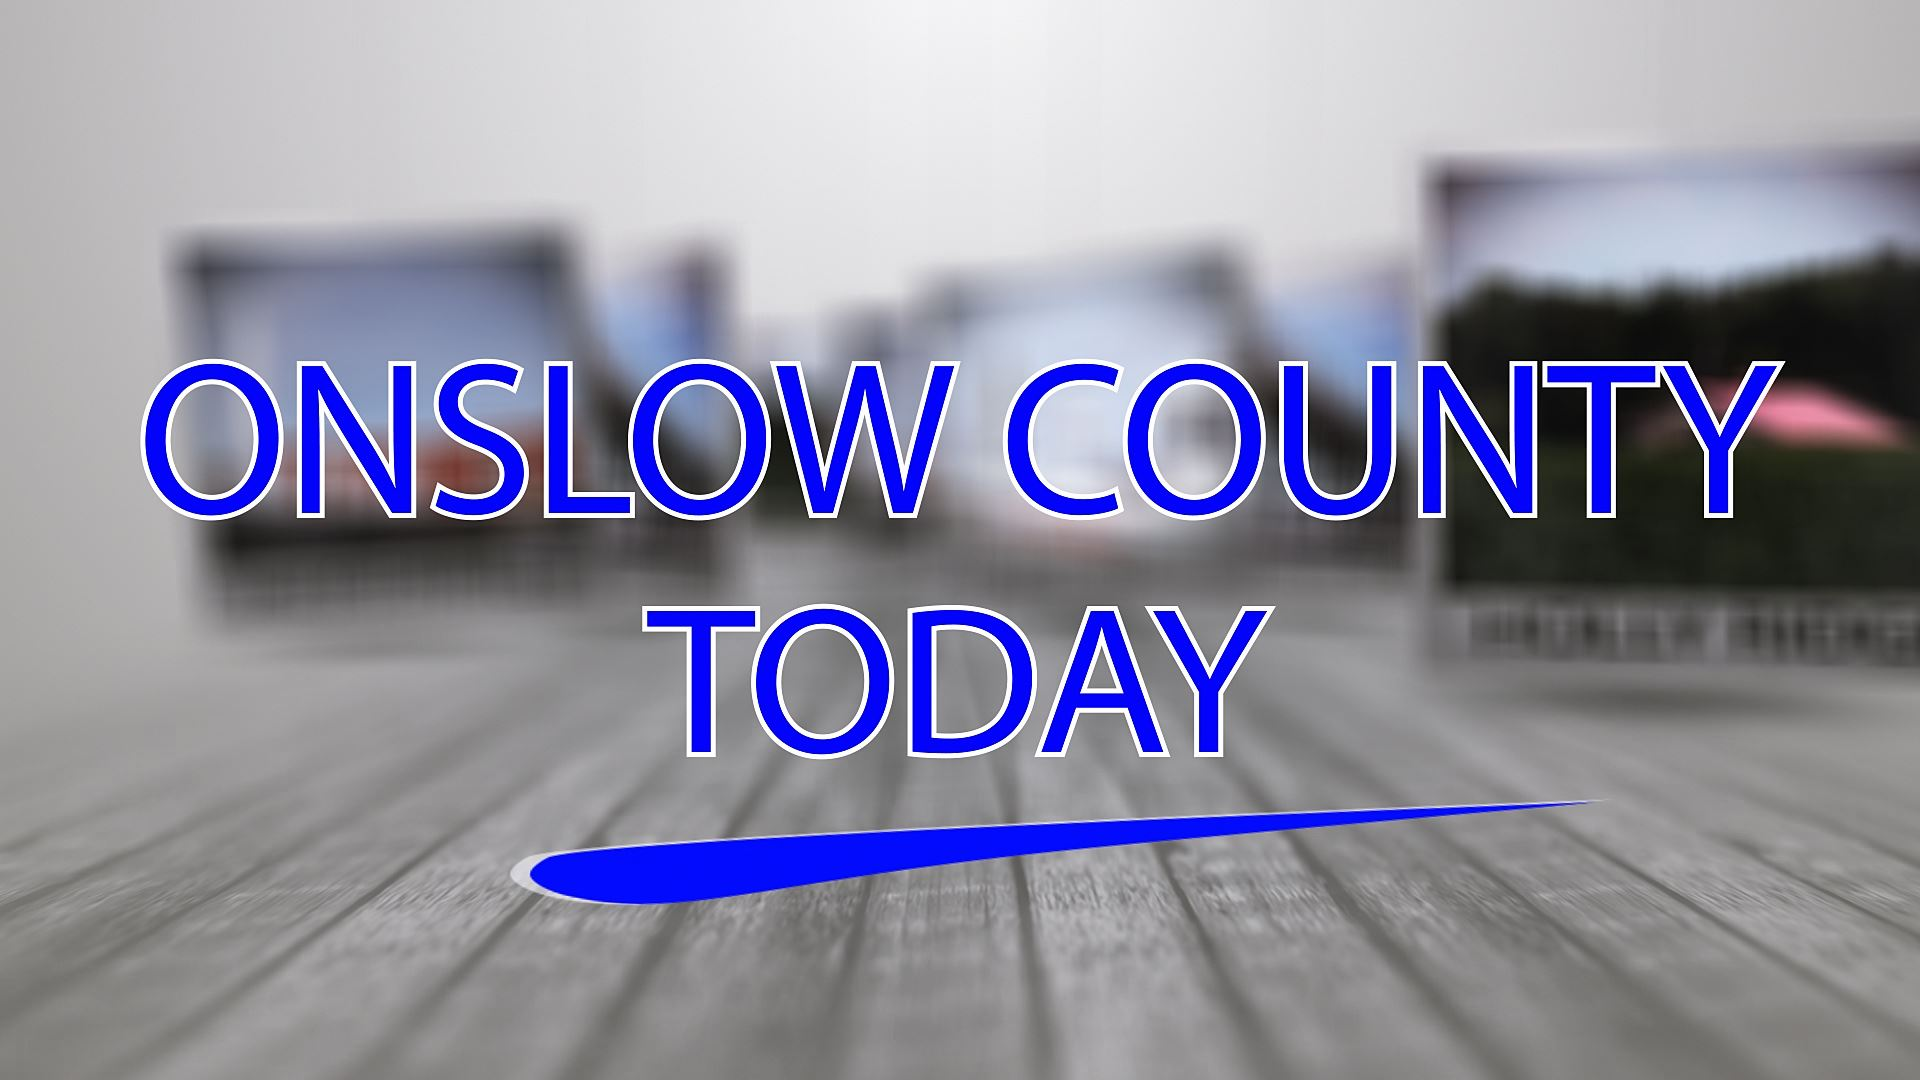 Onslow County Today Open.00_01_24_21.Still002